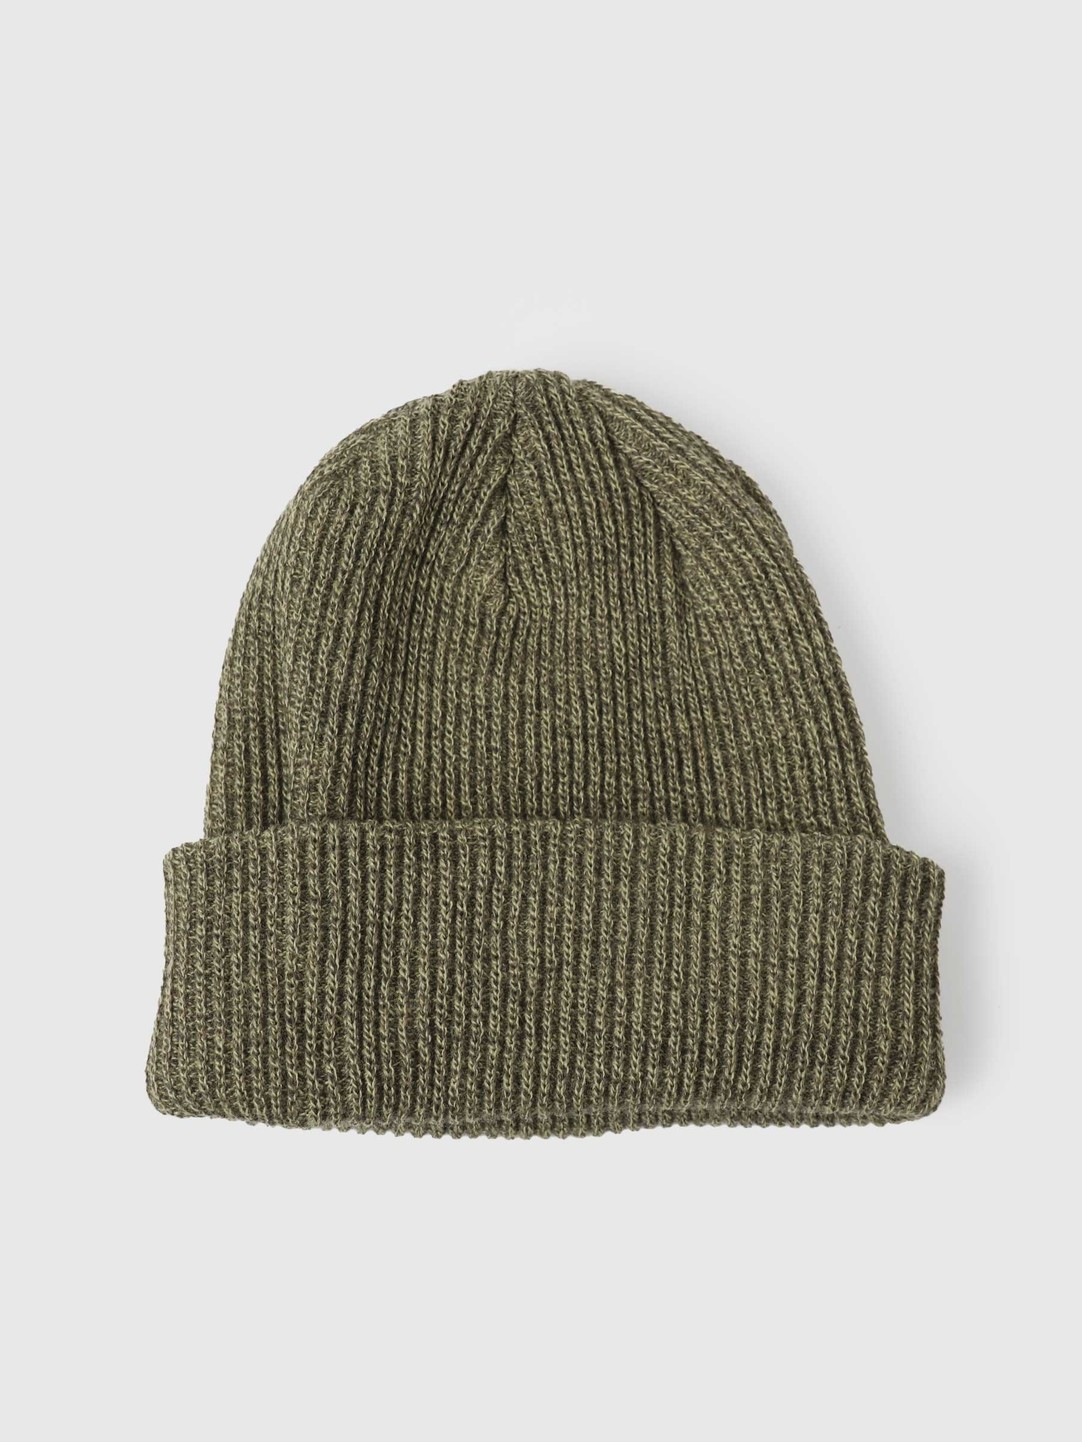 Stussy Stussy Small Patch Watchcap Beanie Olive 132988-0403